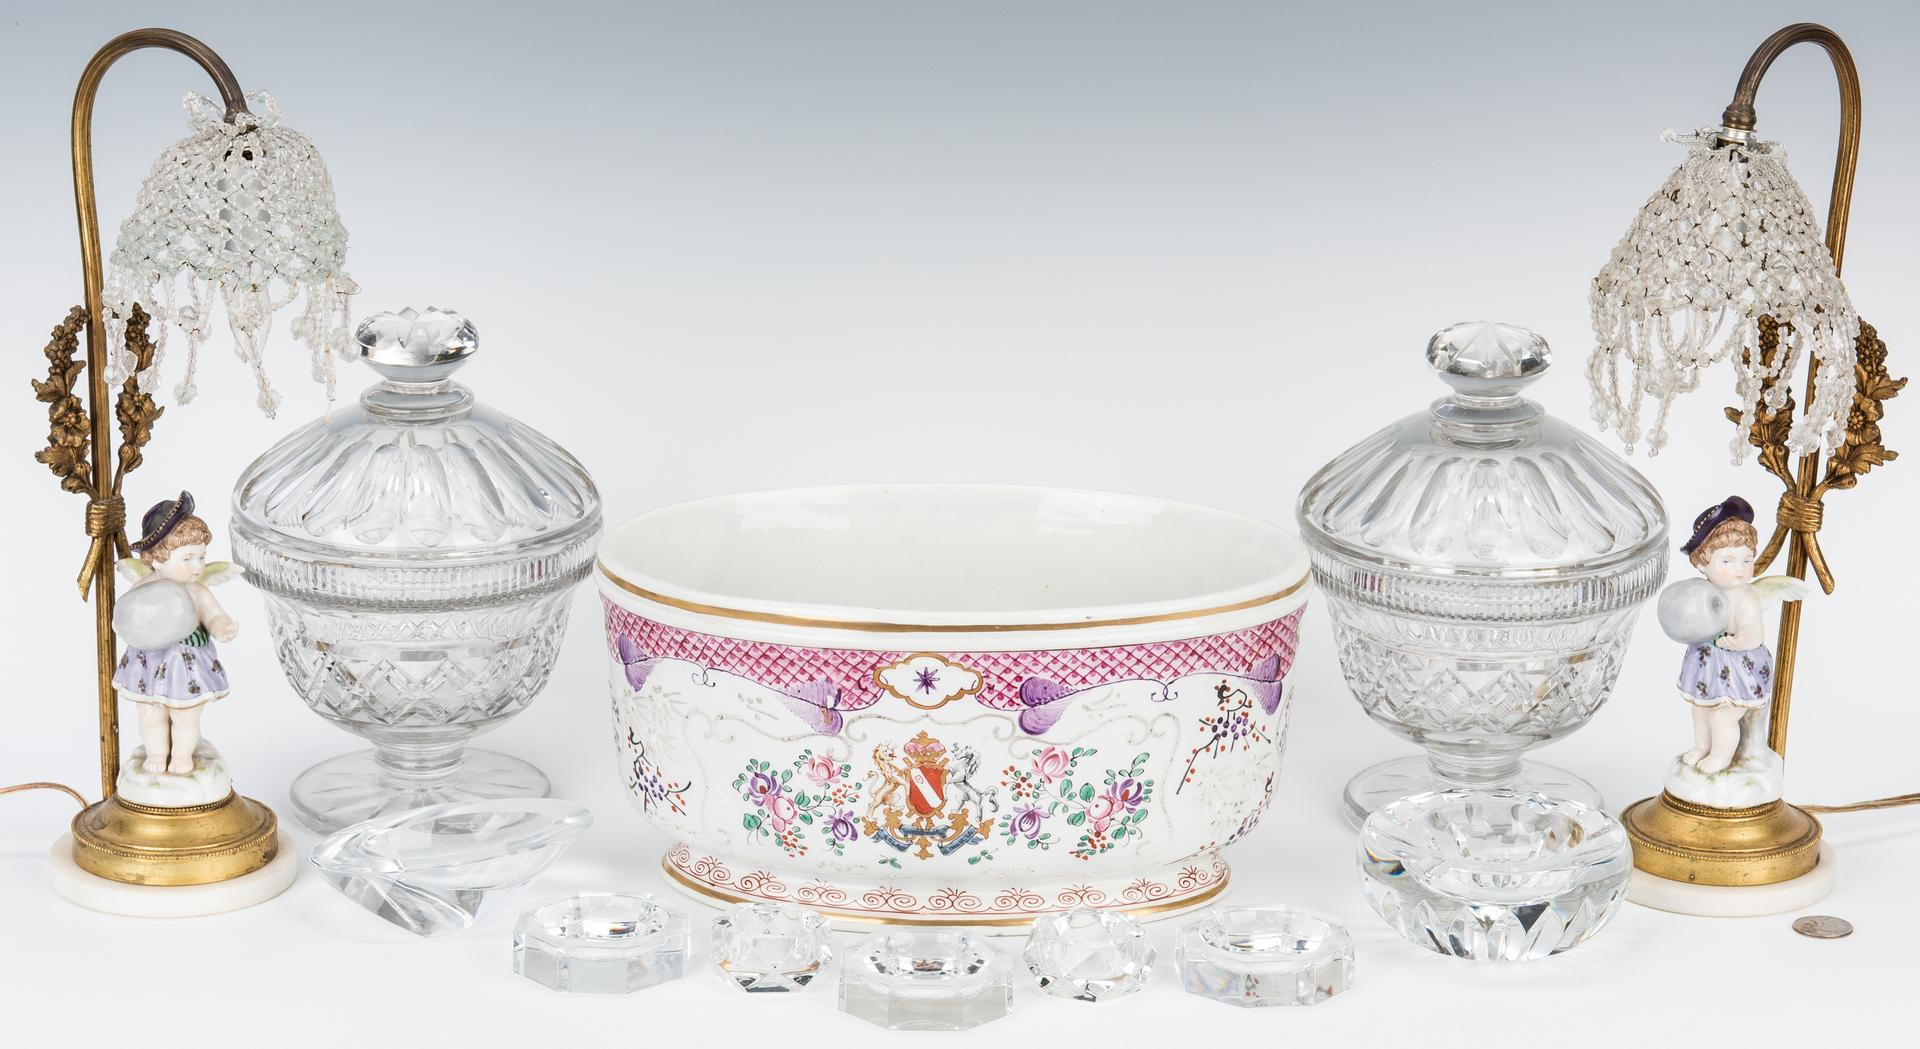 Group 5 Decorative Table Items & Baccarat Crystal - Image 2 of 25